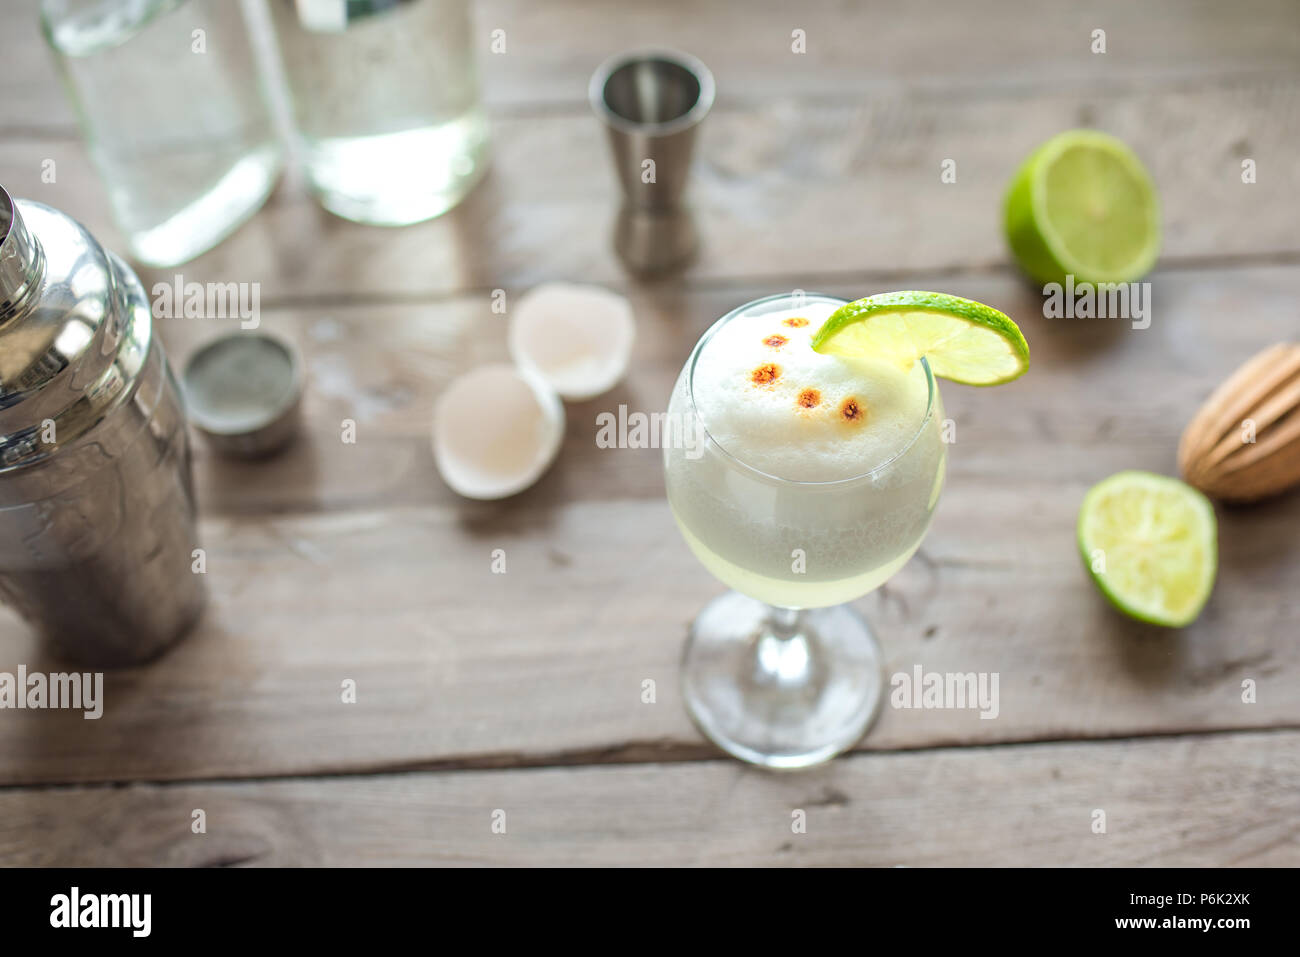 Pisco Sour Cocktail. Peruvian, Mexican, Chilean traditional drink pisco sour liqueur with  lime and egg and bar equipment for making. - Stock Image